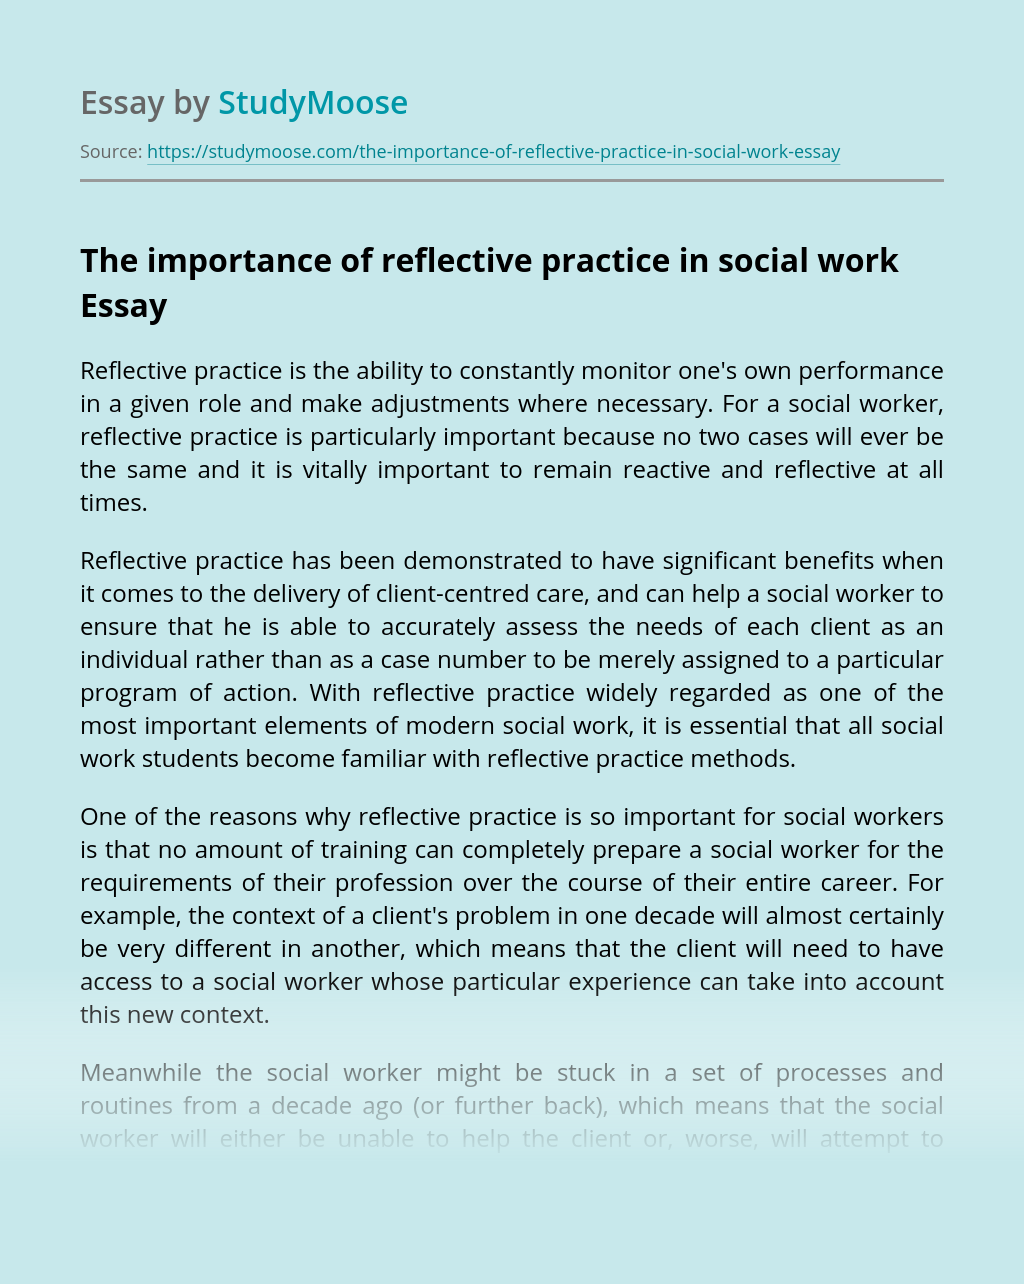 The importance of reflective practice in social work